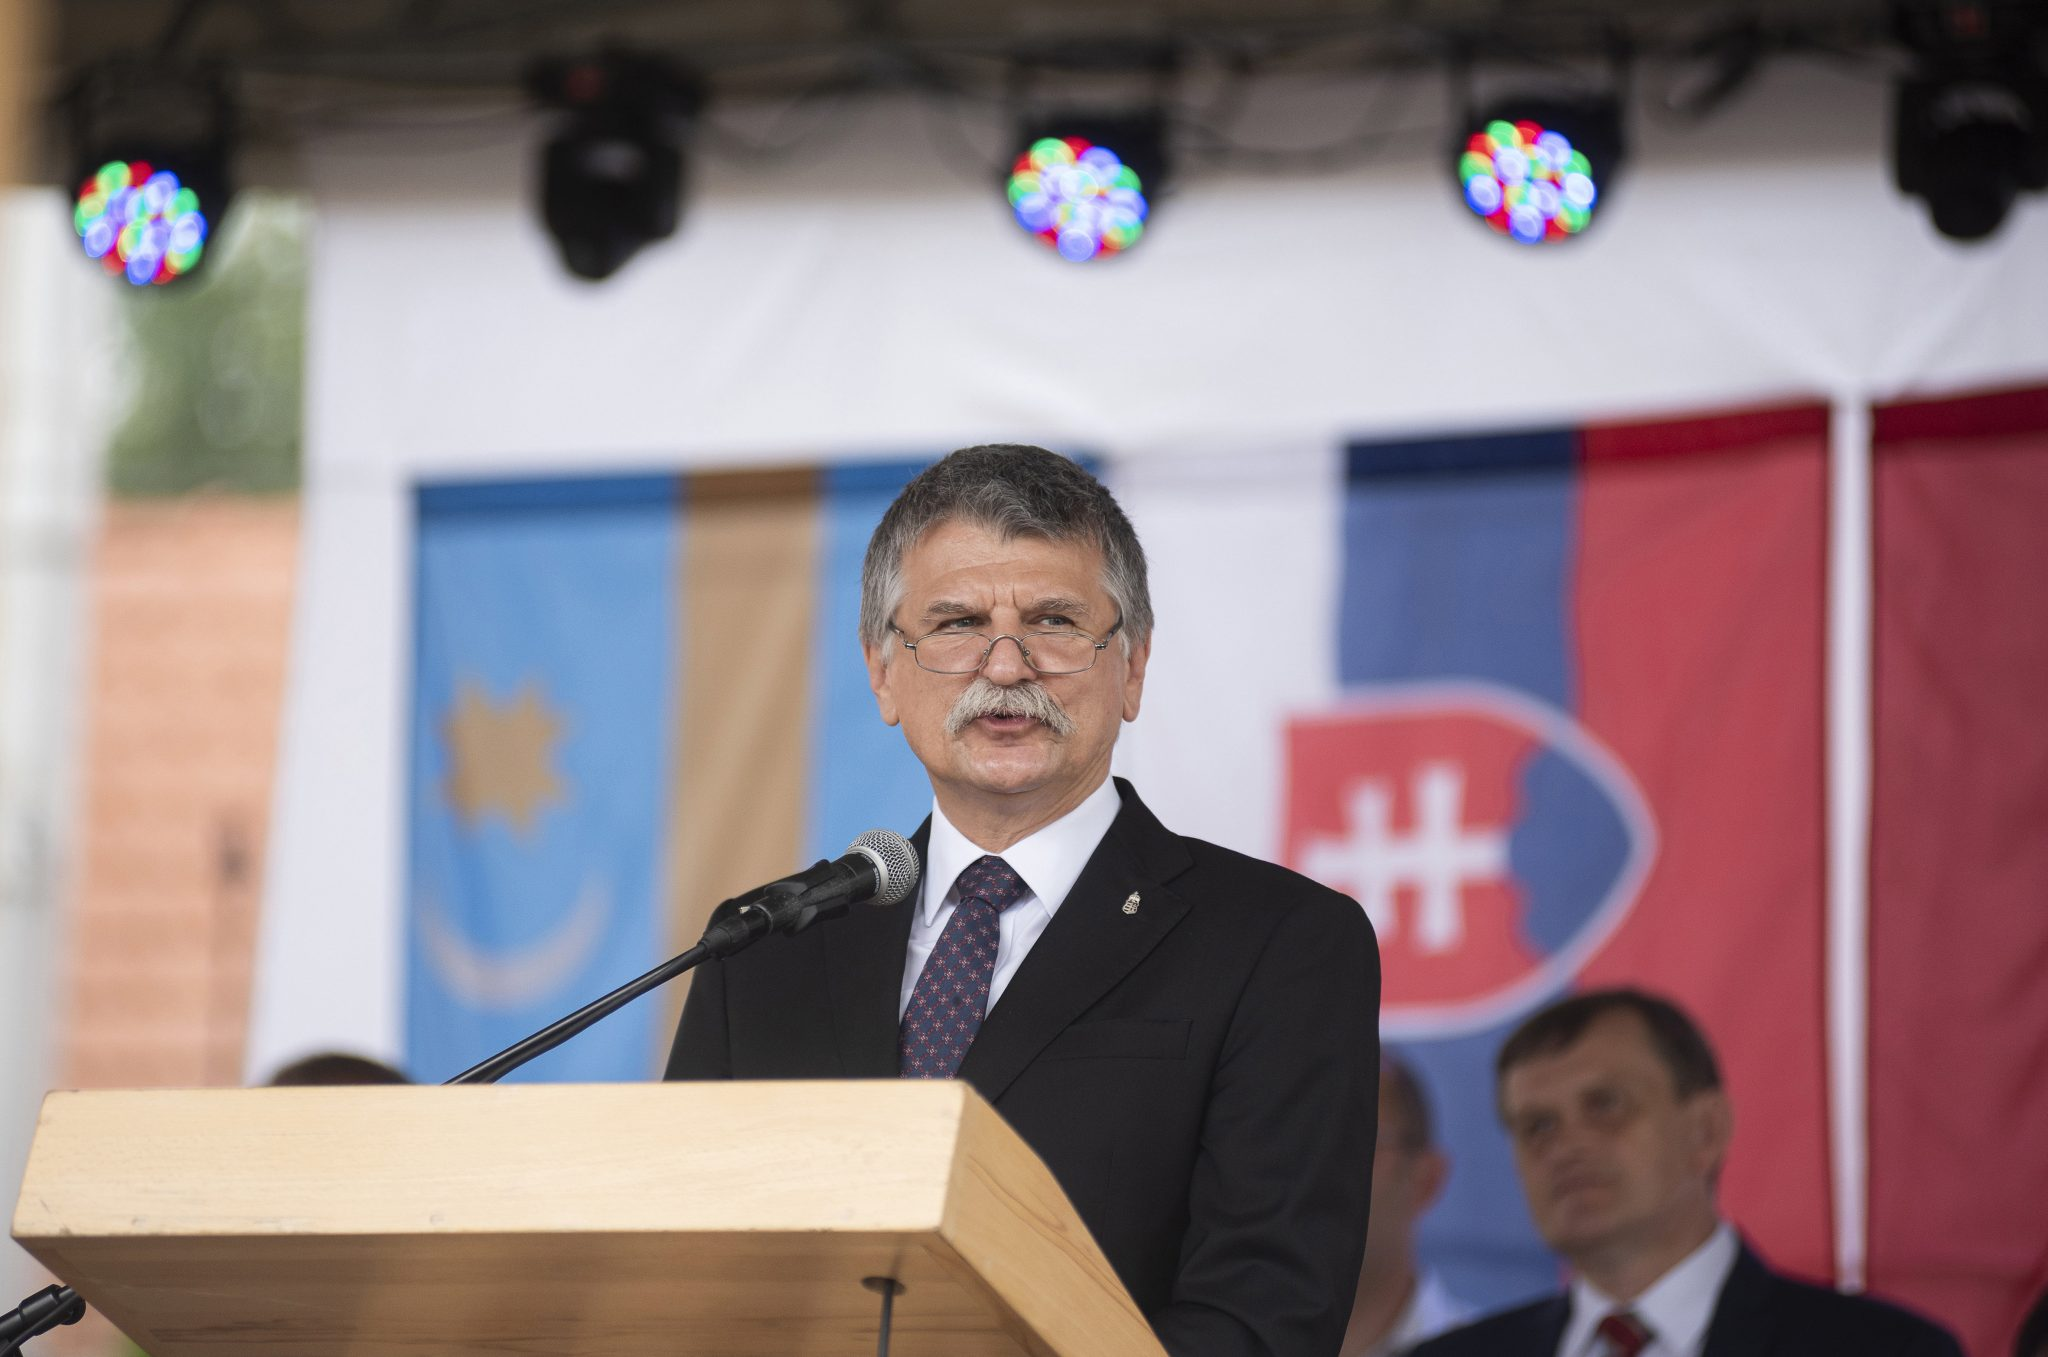 Hungary Wants to Prosper with Neighbours, Says House Speaker post's picture